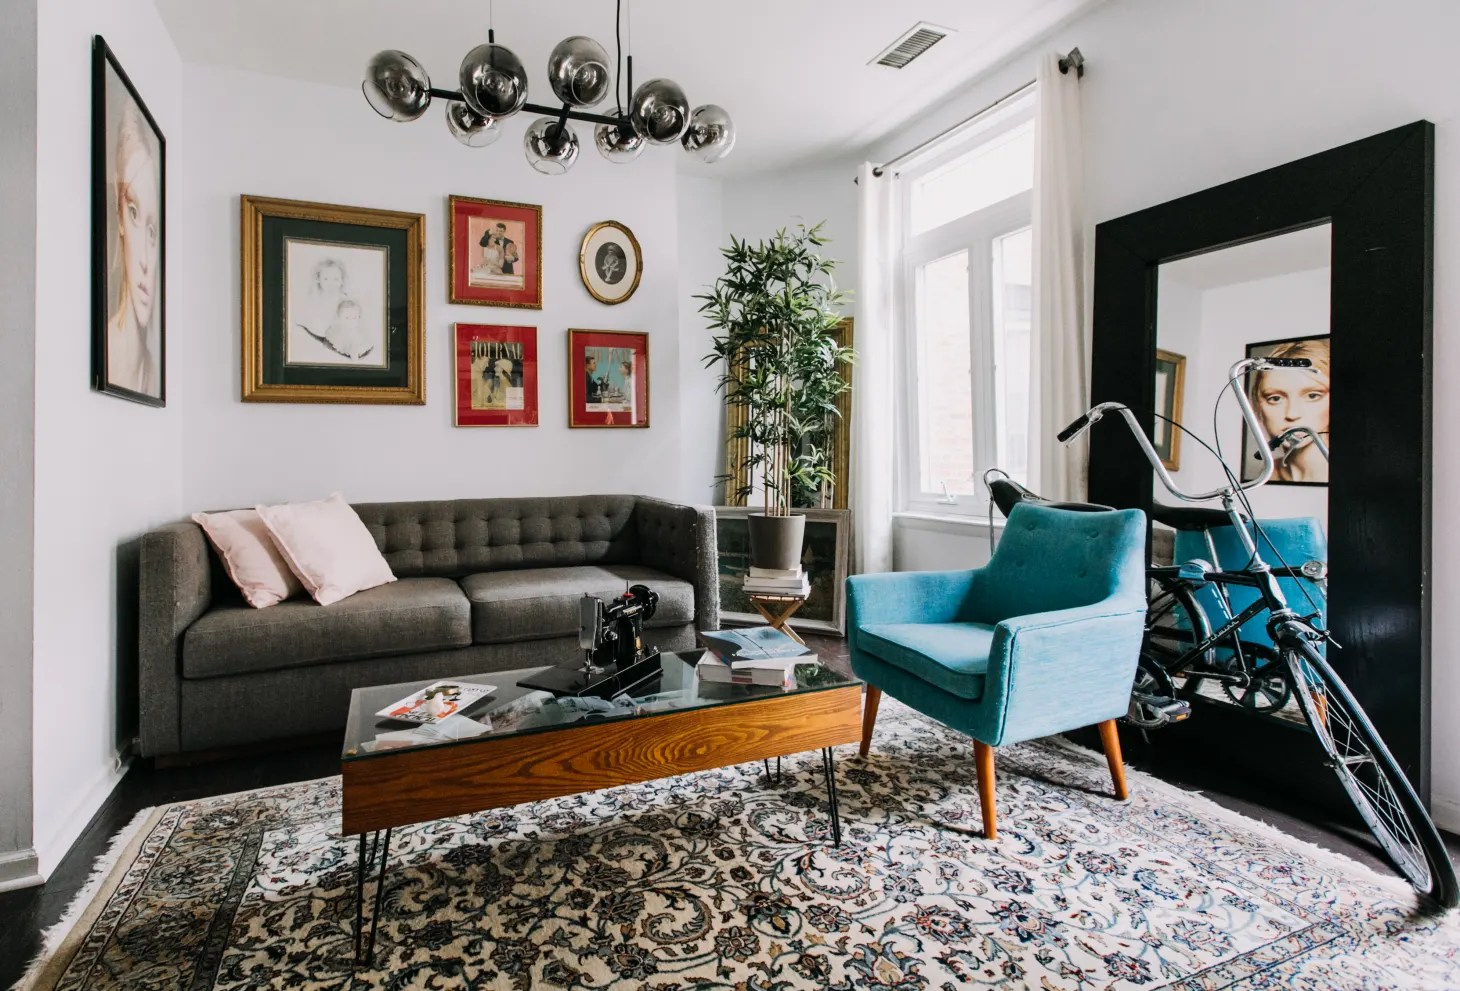 The Best Places To Buy Furniture And Home Decor Online Apartment Therapy